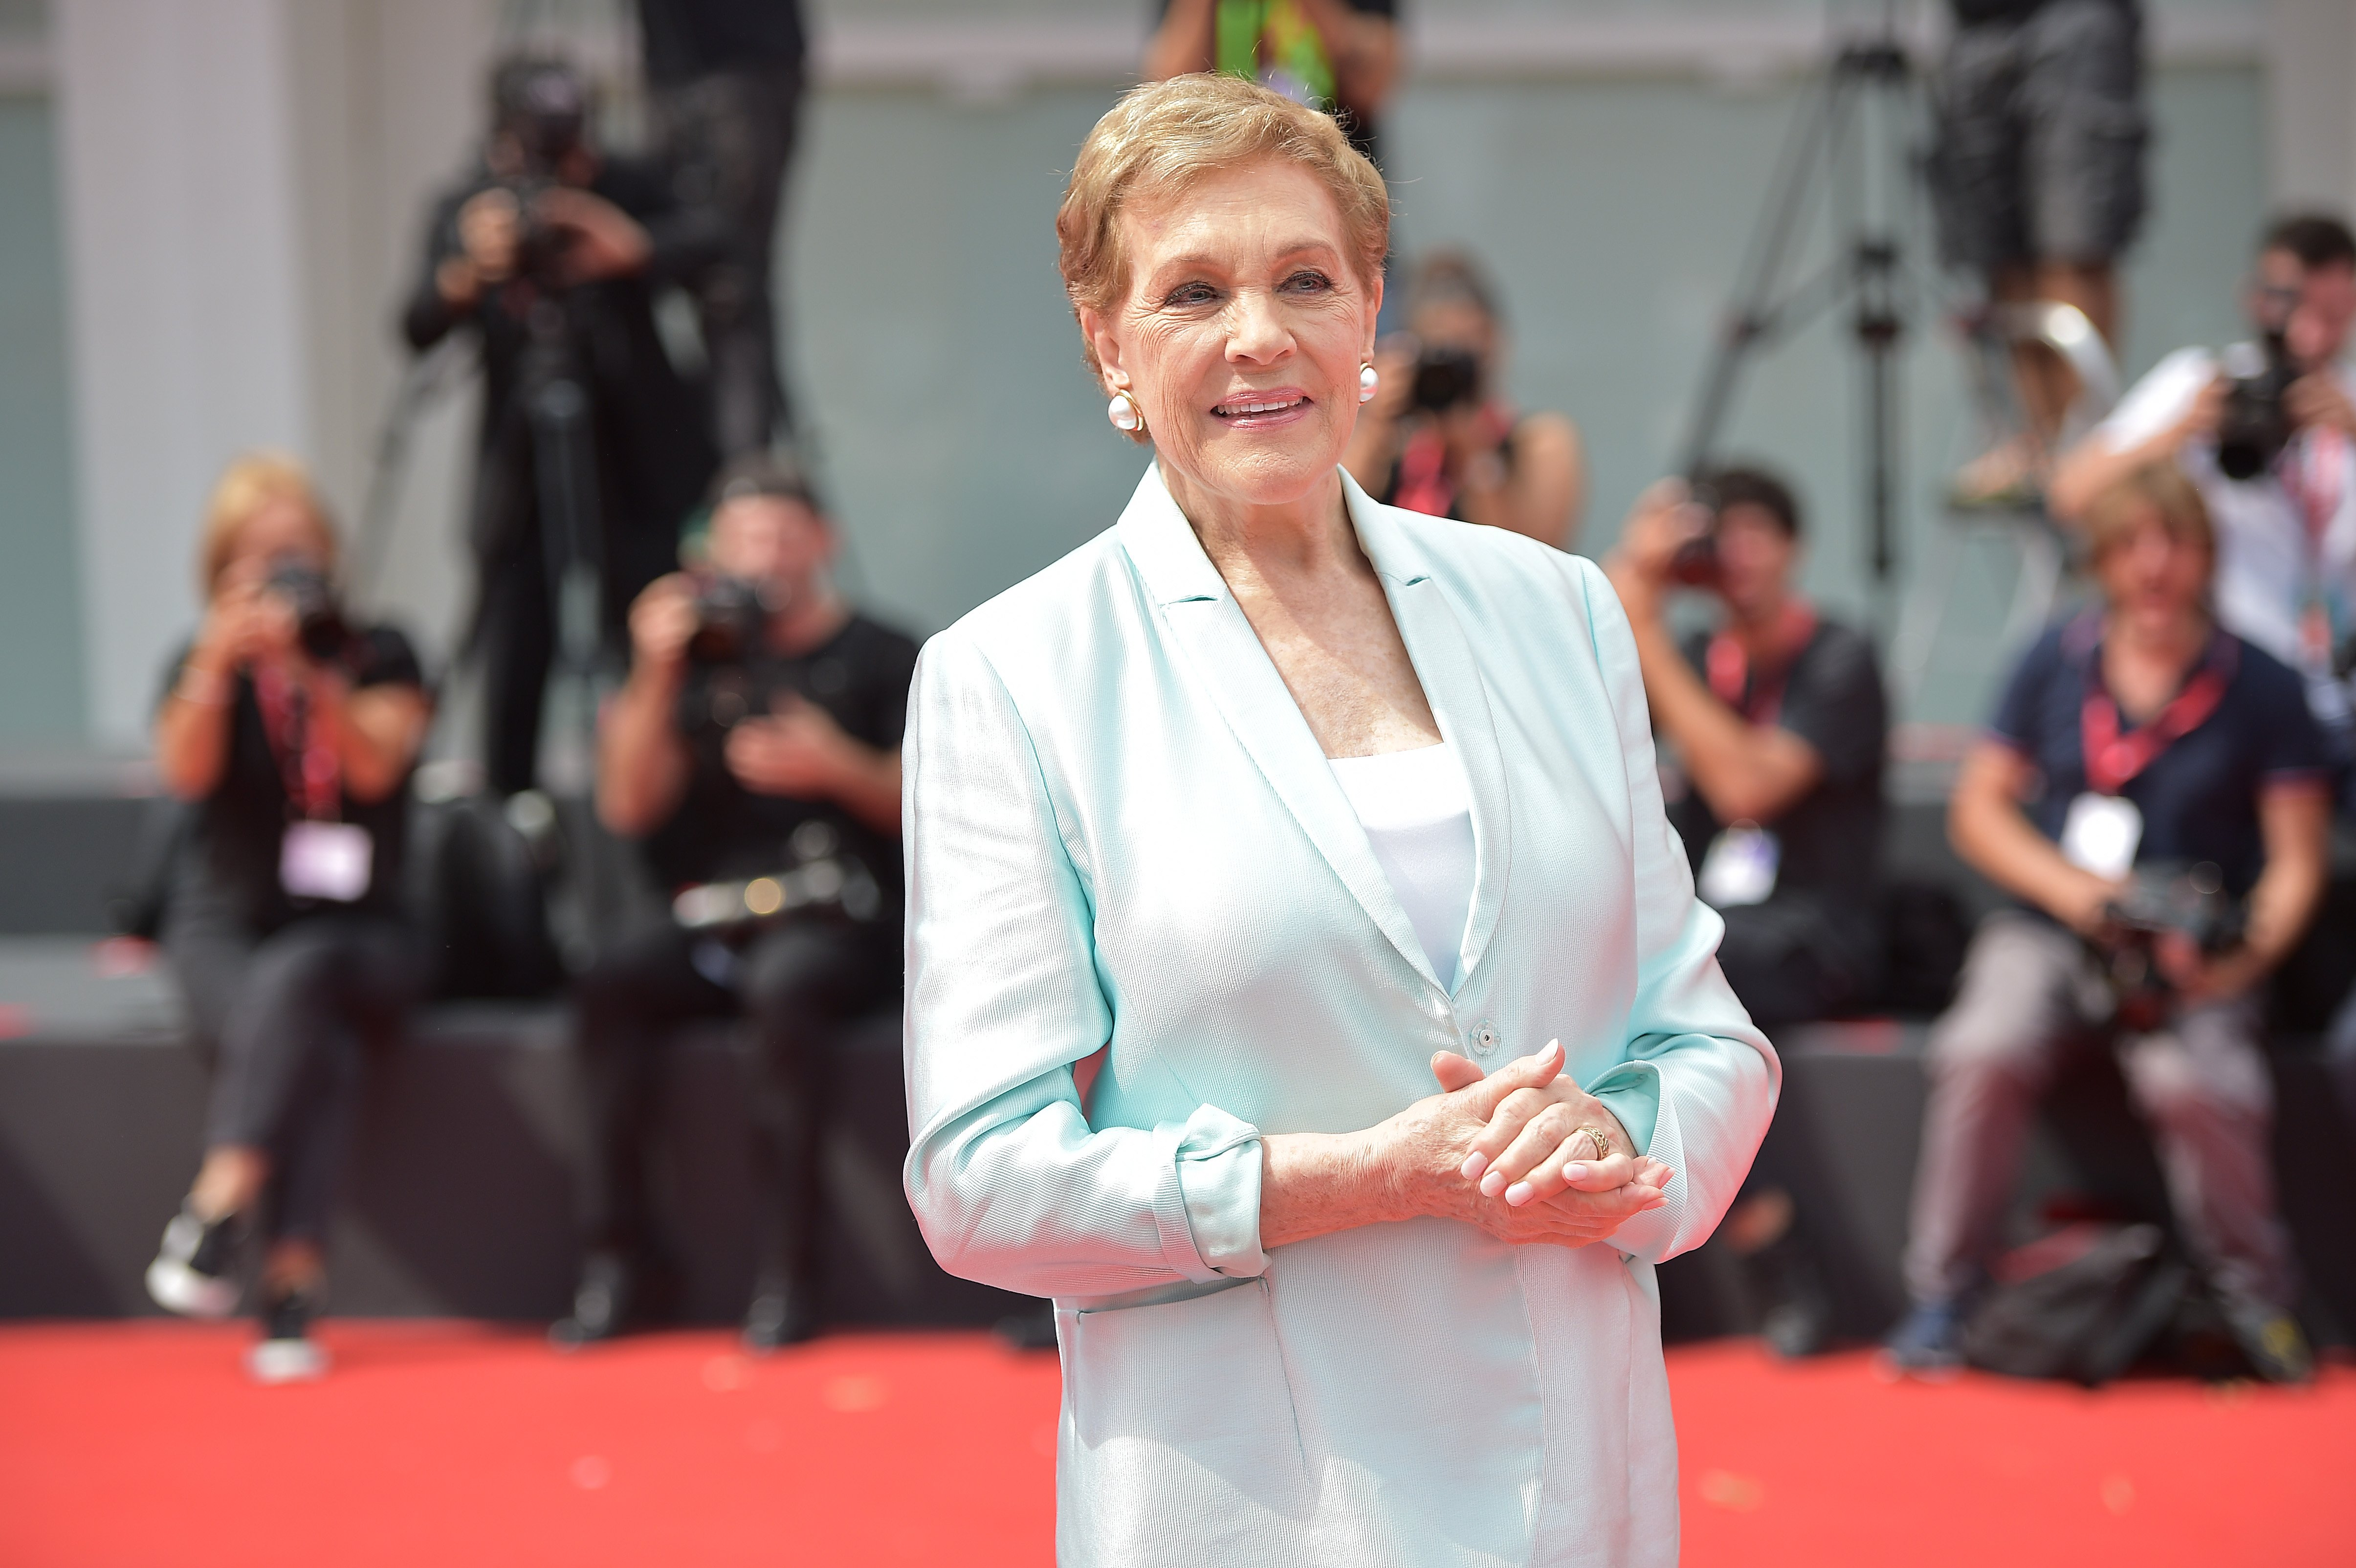 Julie Andrews attends the 76th Venice Film Festival in Italy on September 2, 2019 | Photo: Getty Images